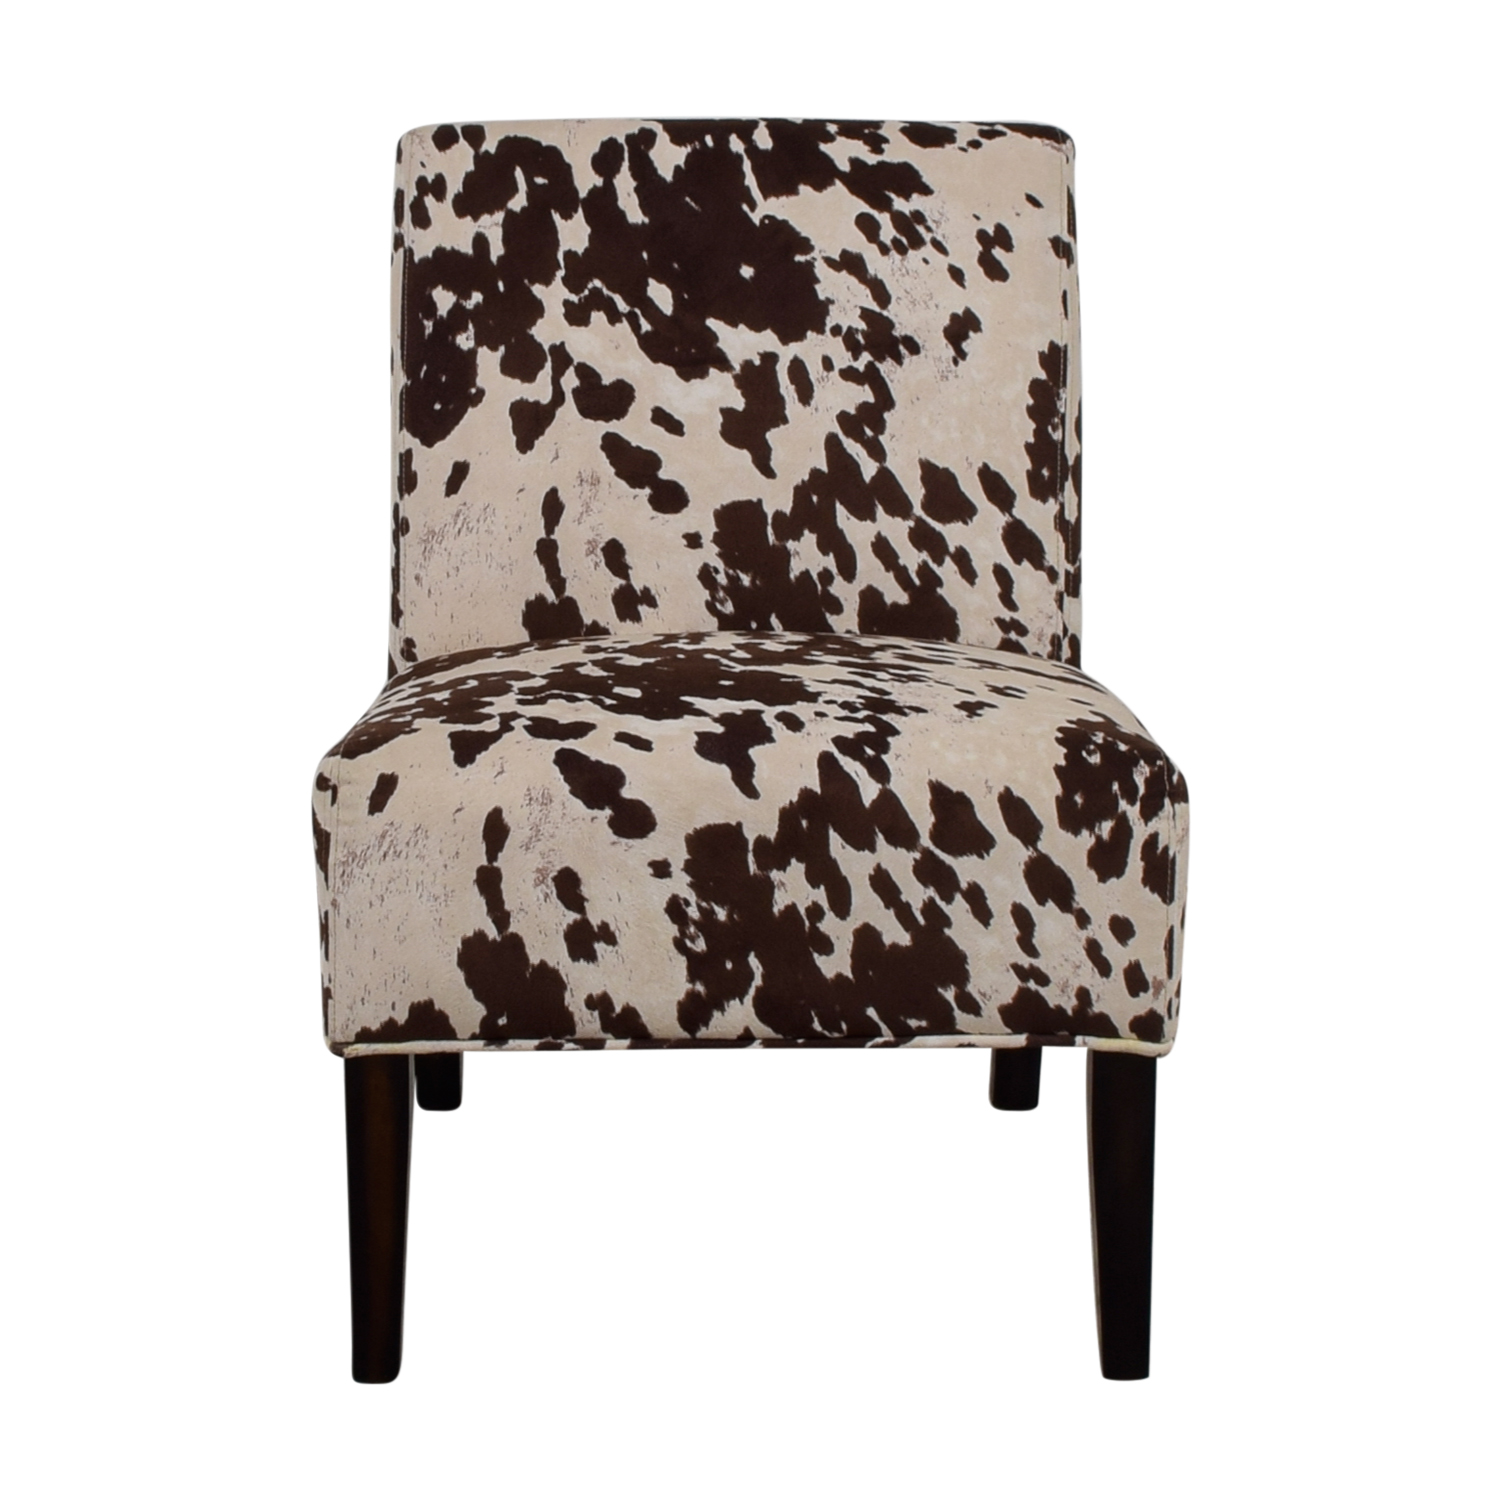 Cow Hide Chair 85 Off Inspire Q Inspire Brown And Cream Faux Cow Hide Fabric Accent Chair Chairs